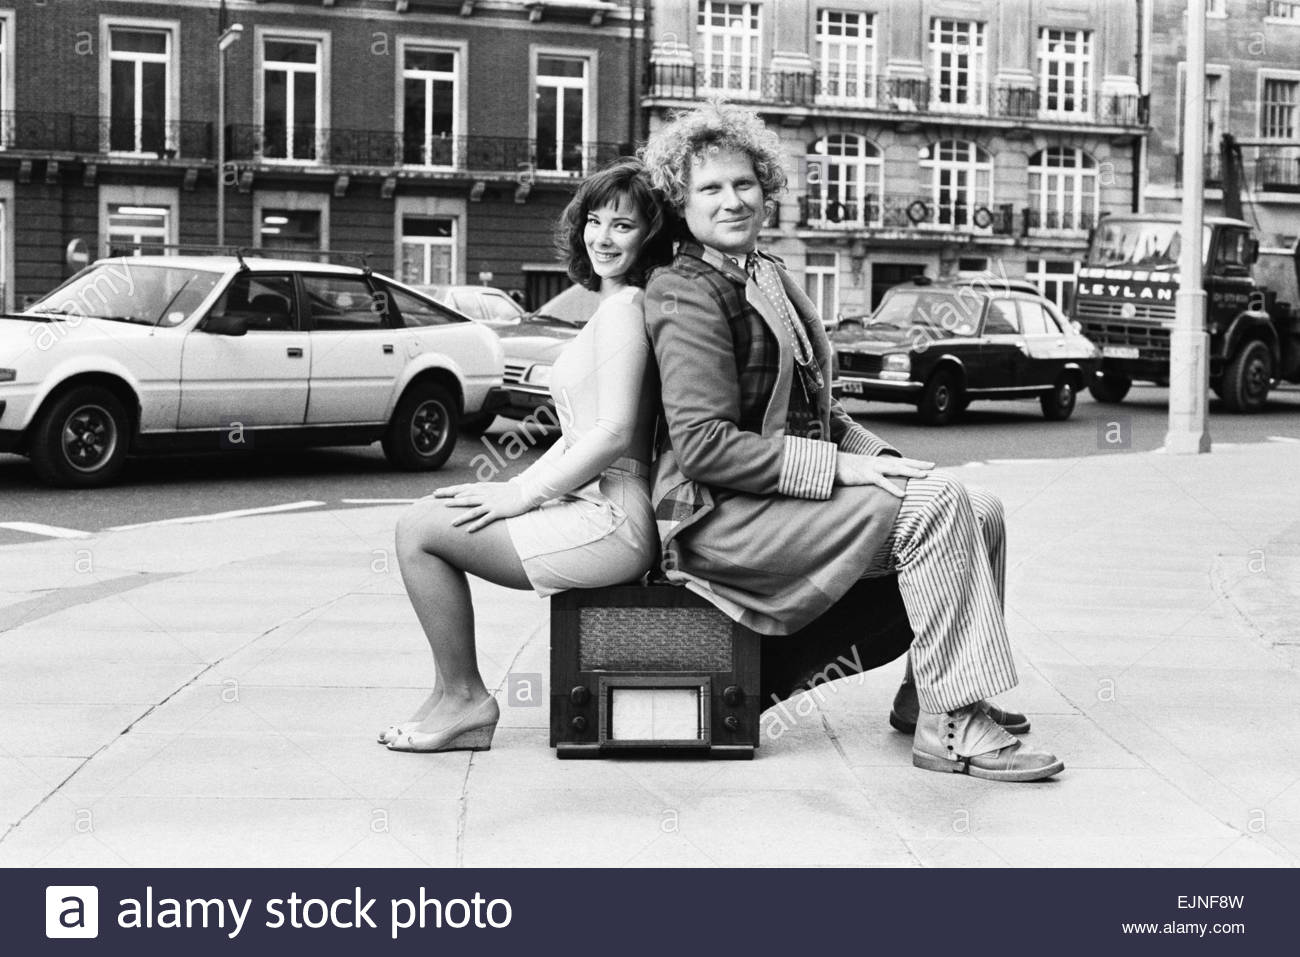 actor-colin-baker-who-plays-doctor-who-in-the-bbc-science-fiction-EJNF8W.jpg